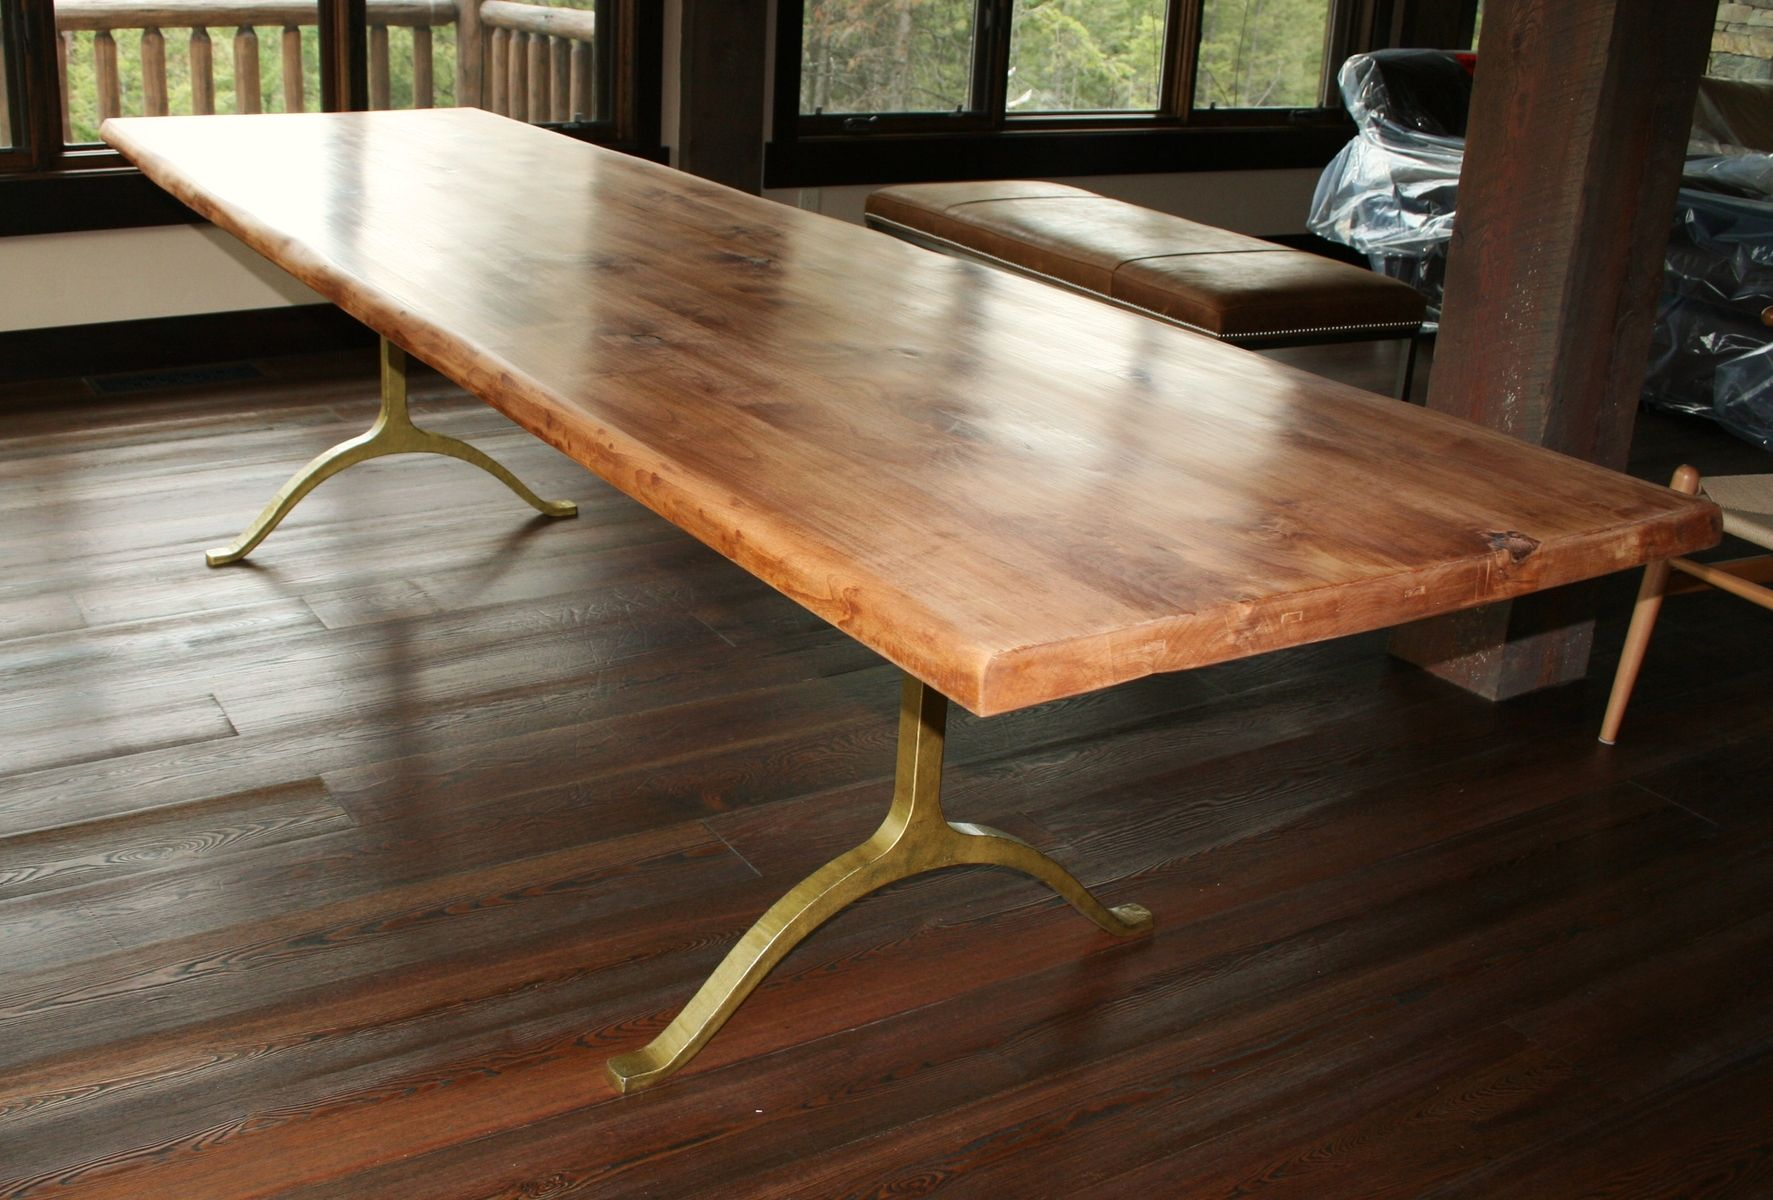 Handmade Rustic Dining Table by Echo Peak Design  : 30189139822 from www.custommade.com size 1773 x 1200 jpeg 253kB